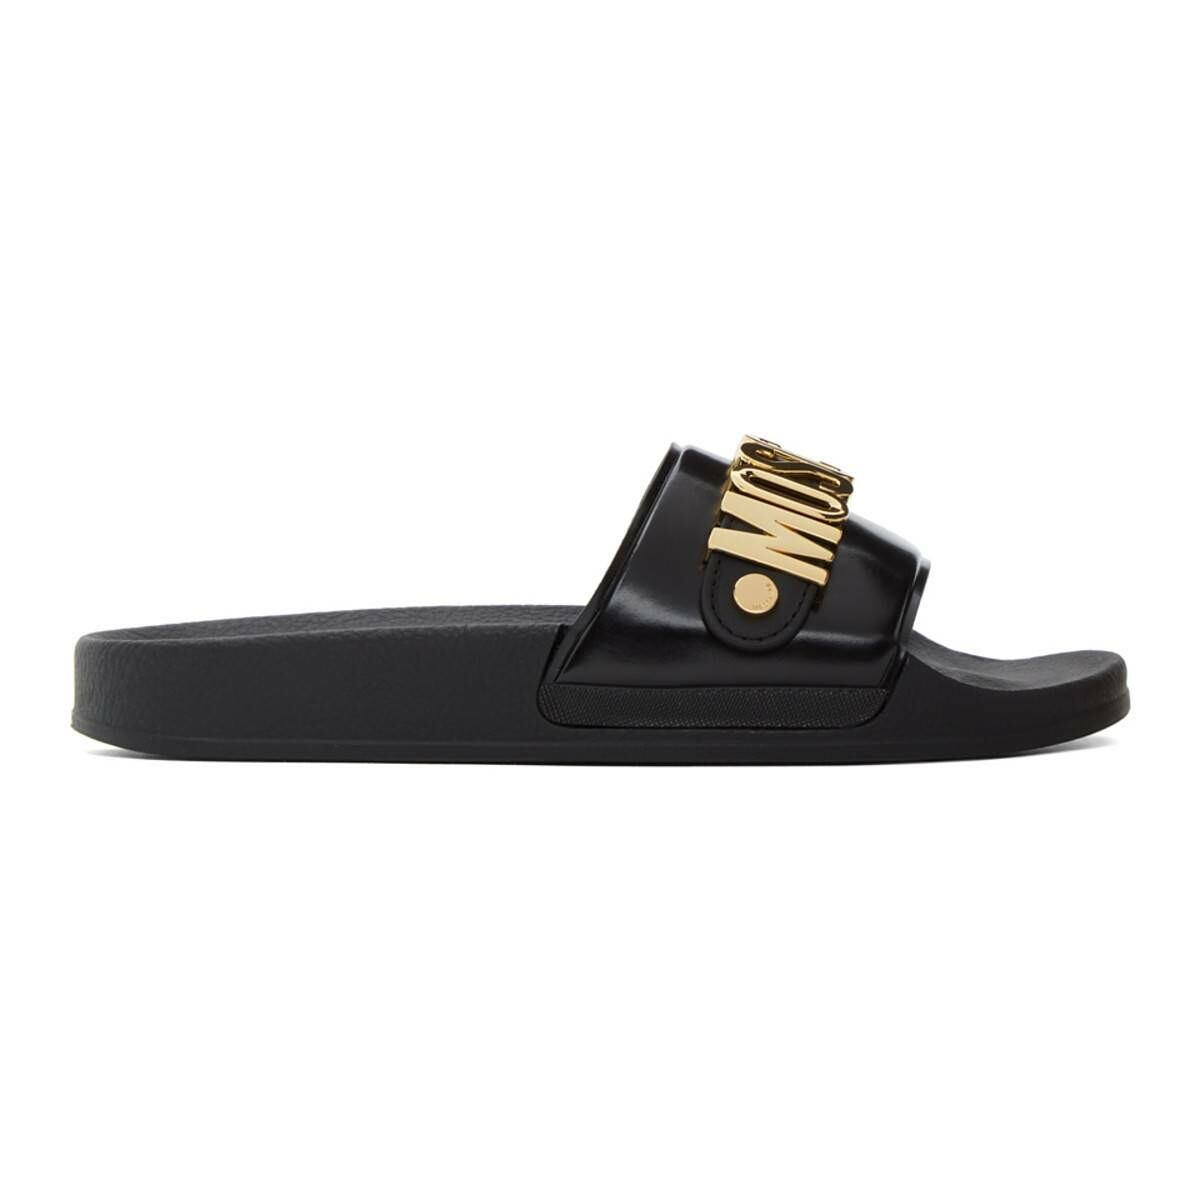 Moschino Black Metallic Logo Slides Ssense USA MEN Men SHOES Mens SANDALS